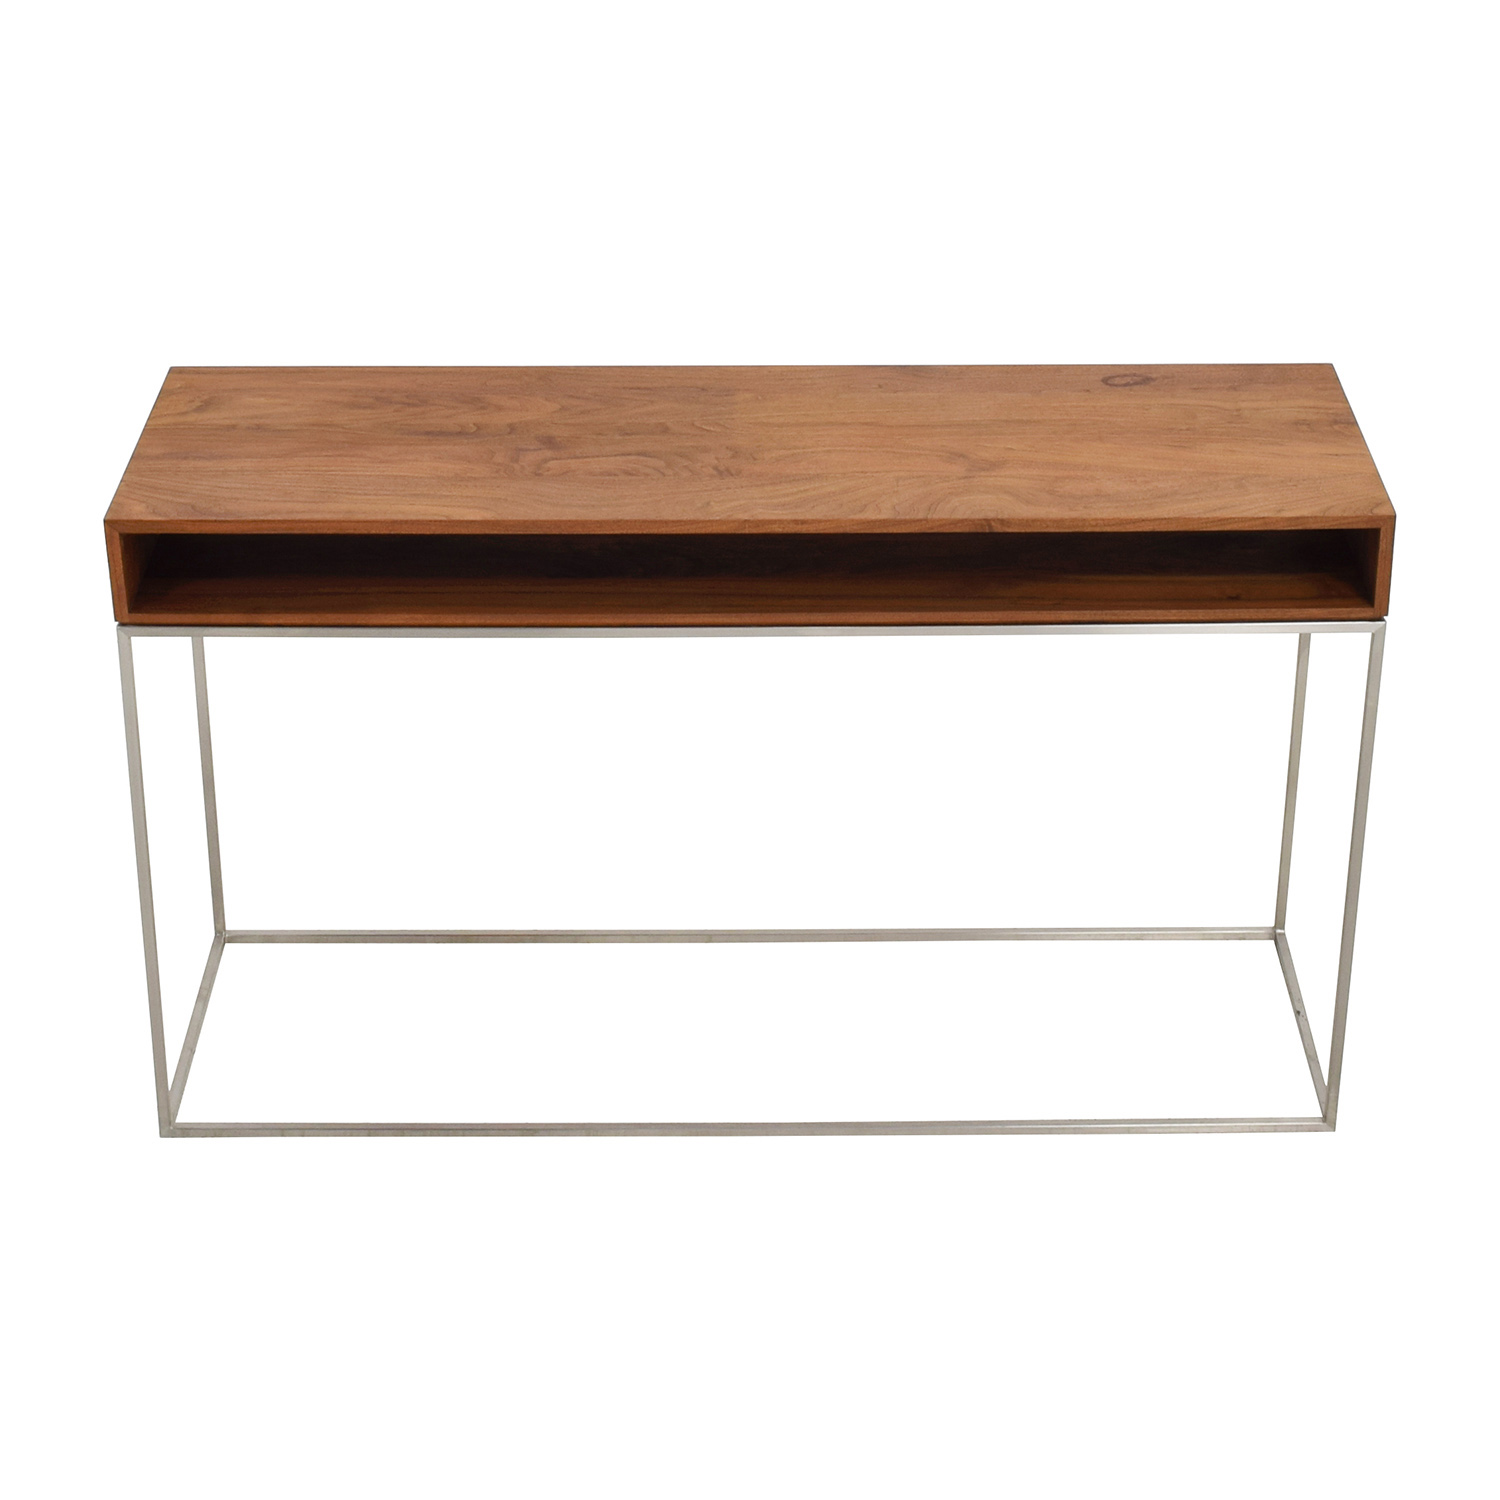 CB2 CB2 Wood and Metal Frame Console Table nj